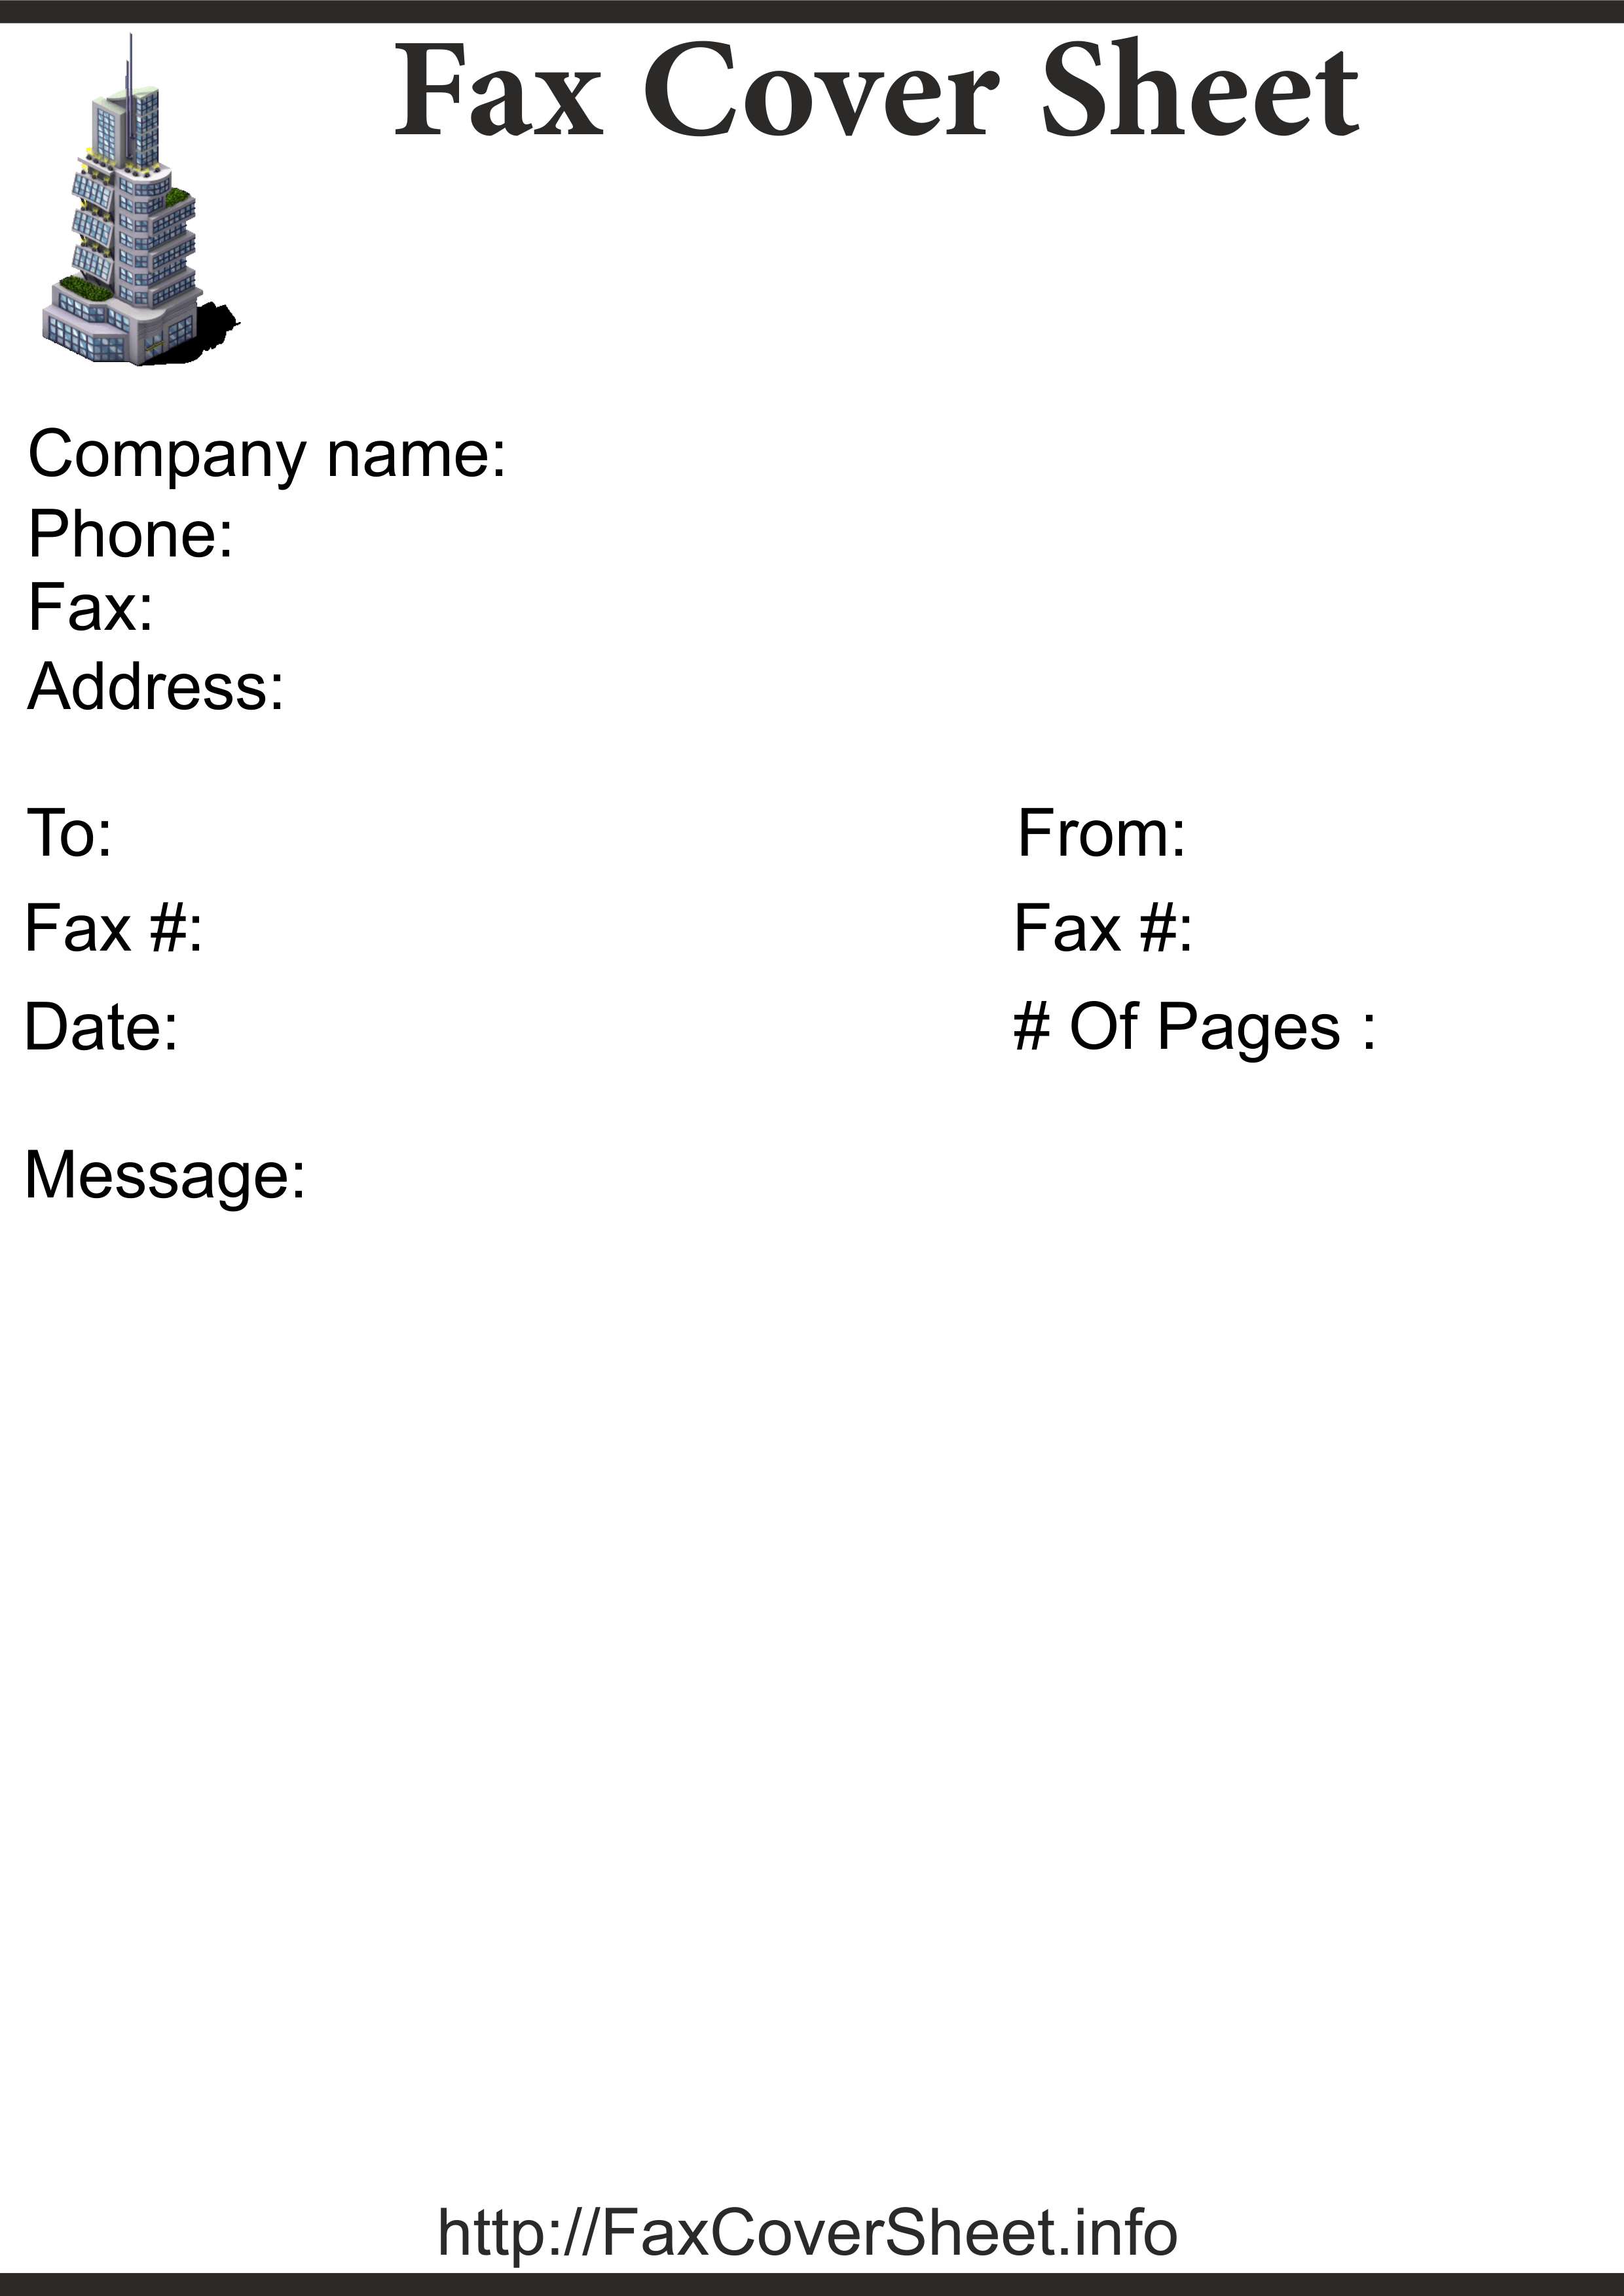 Free Downtown Fax Cover Sheet, Downtown Fax Cover Sheet Template